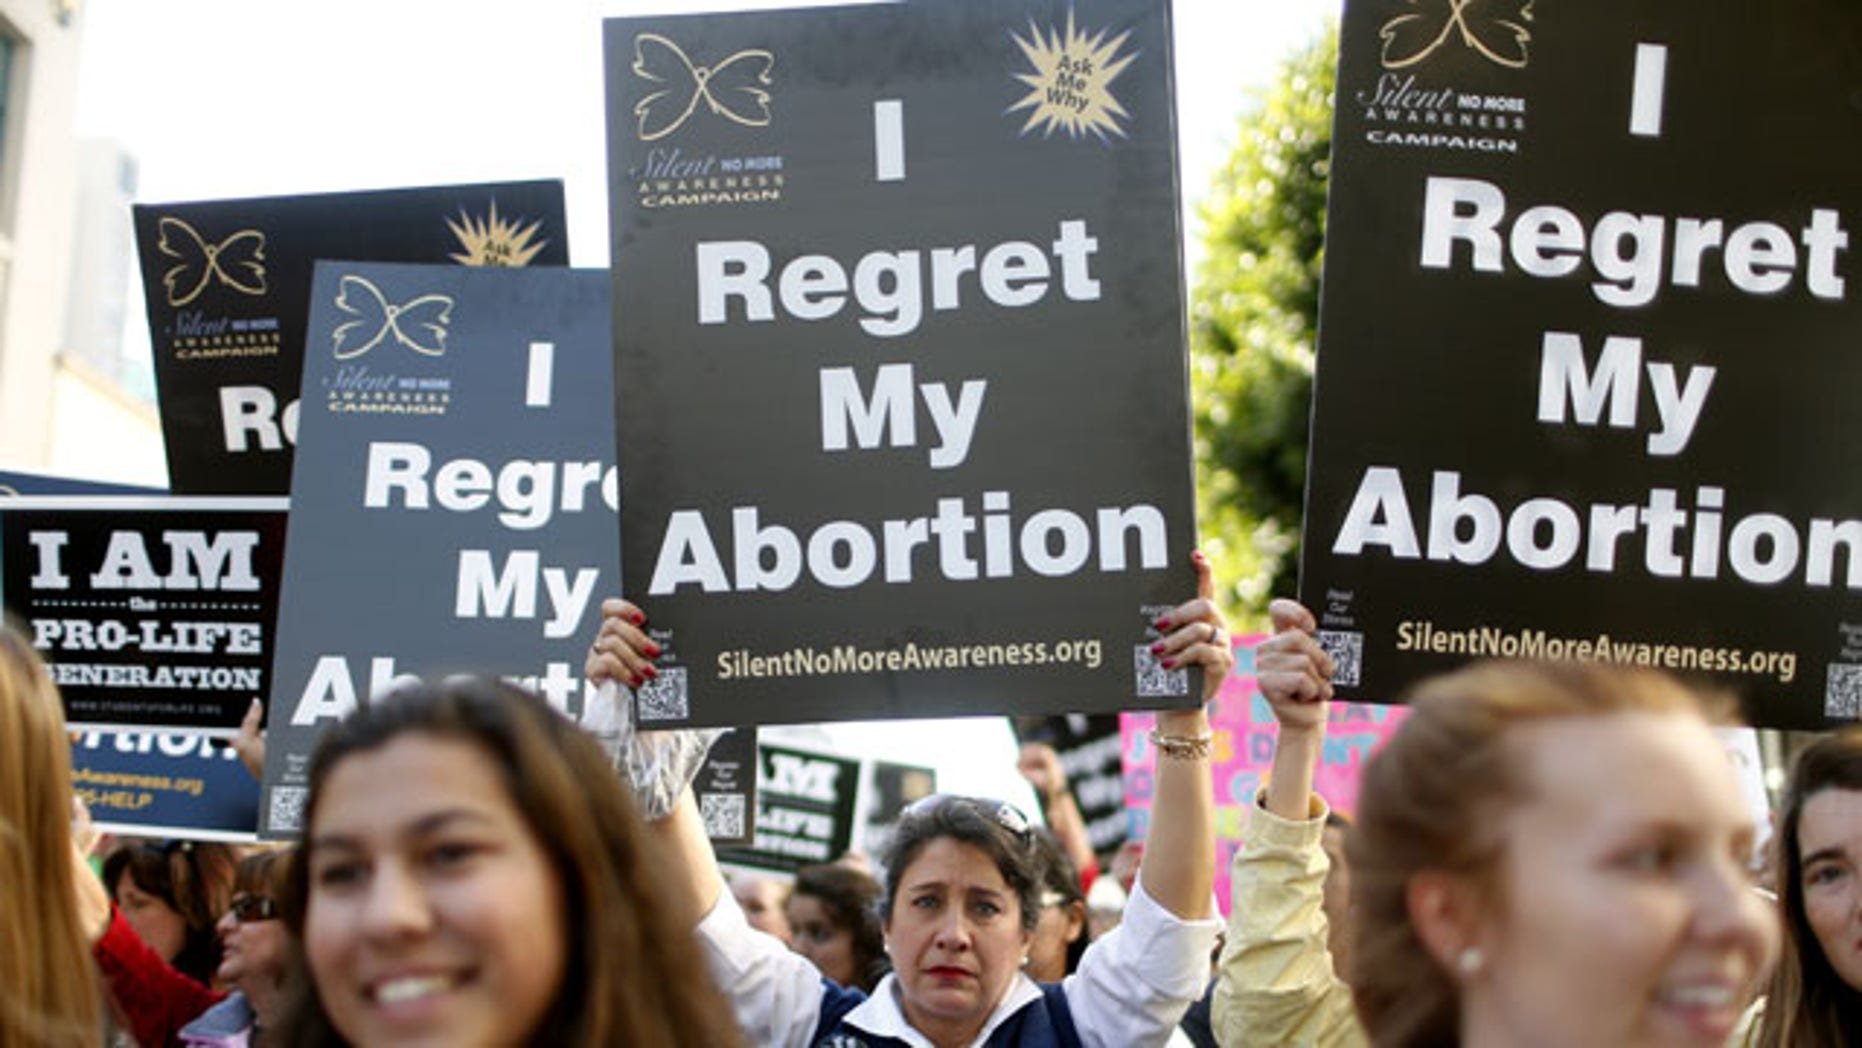 Us Abortion Rate At Lowest Level Since 1973 According To Survey